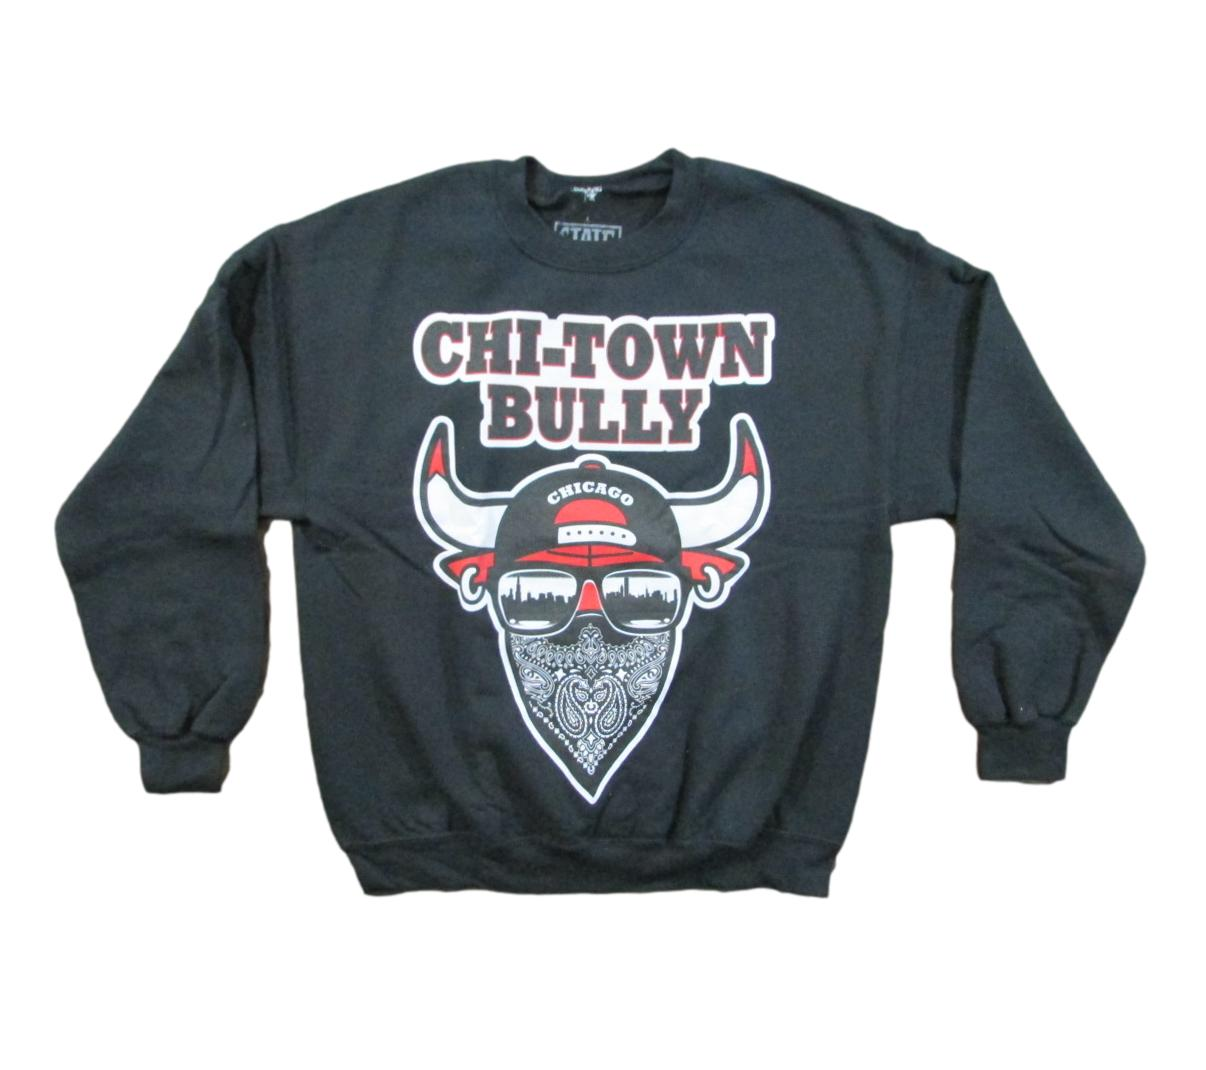 Chi-Town Bully Chicago Basketball Sweater Sz L